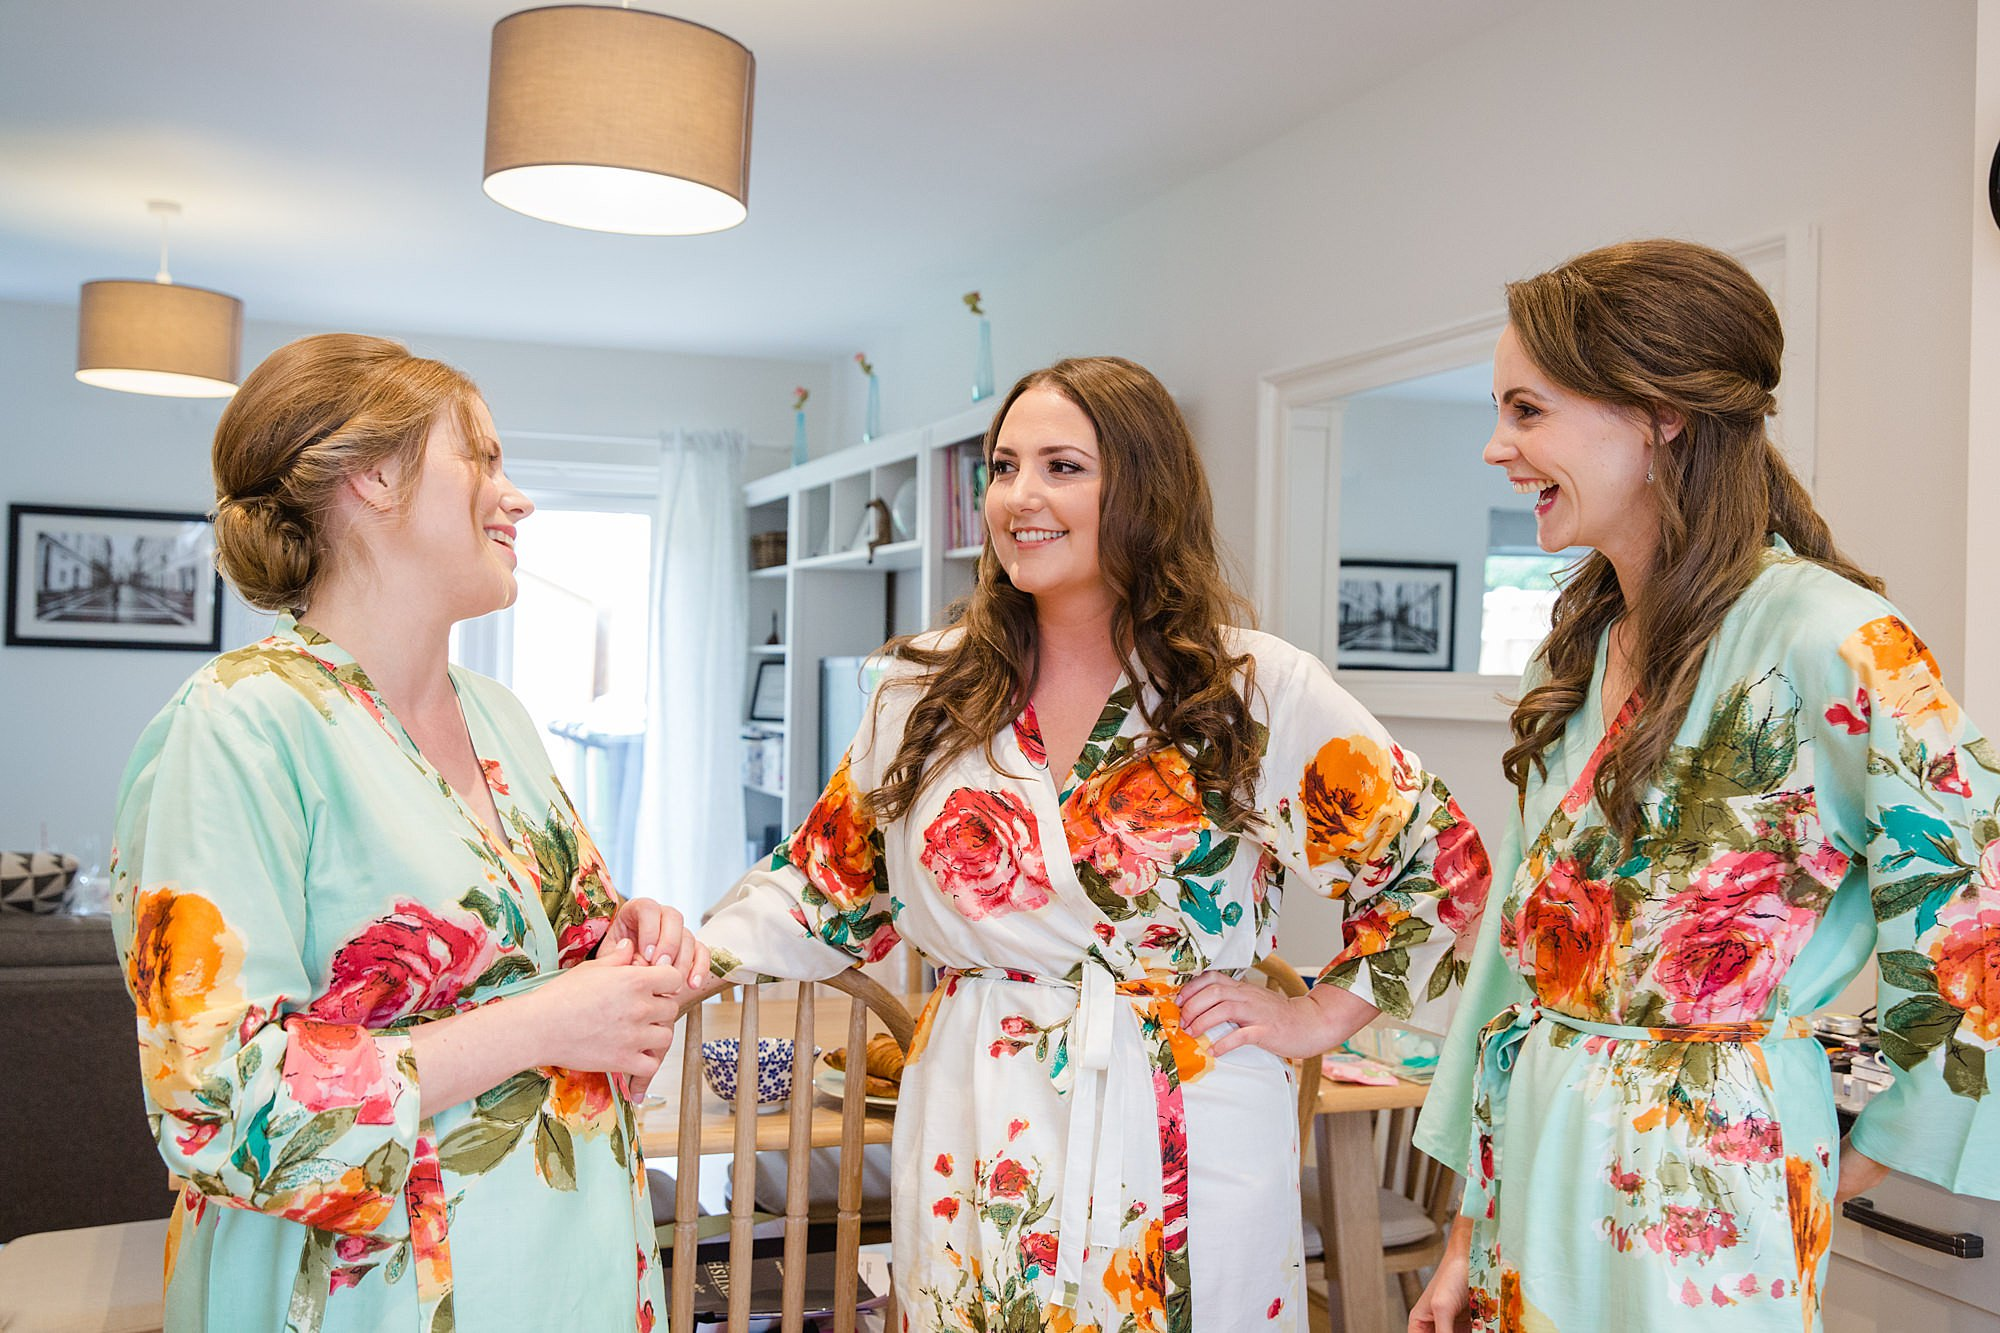 fun outdoor wedding bride and bridesmaids in kimonos